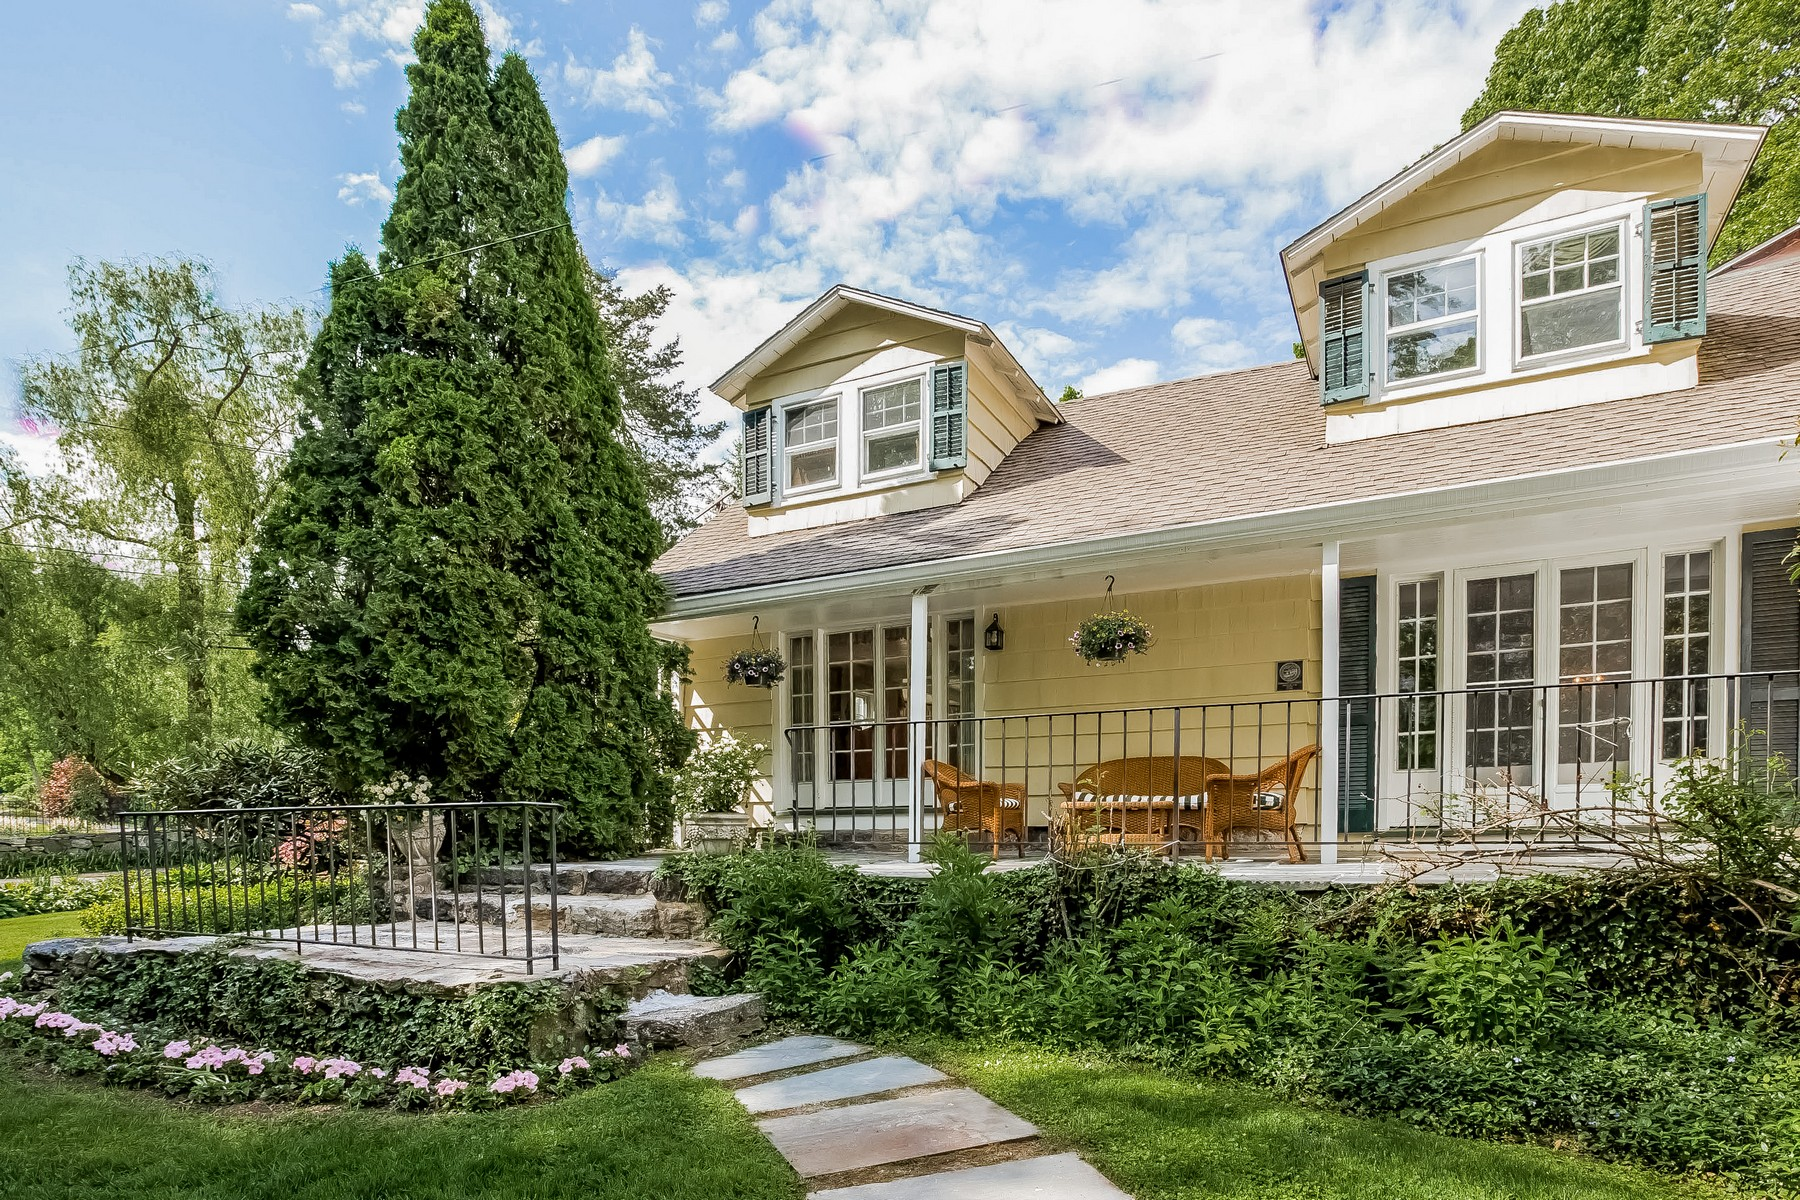 Single Family Home for Sale at Beautifully Updated 5 Bedroom Greenwich Antique 116 Pecksland Road Greenwich, Connecticut, 06831 United States